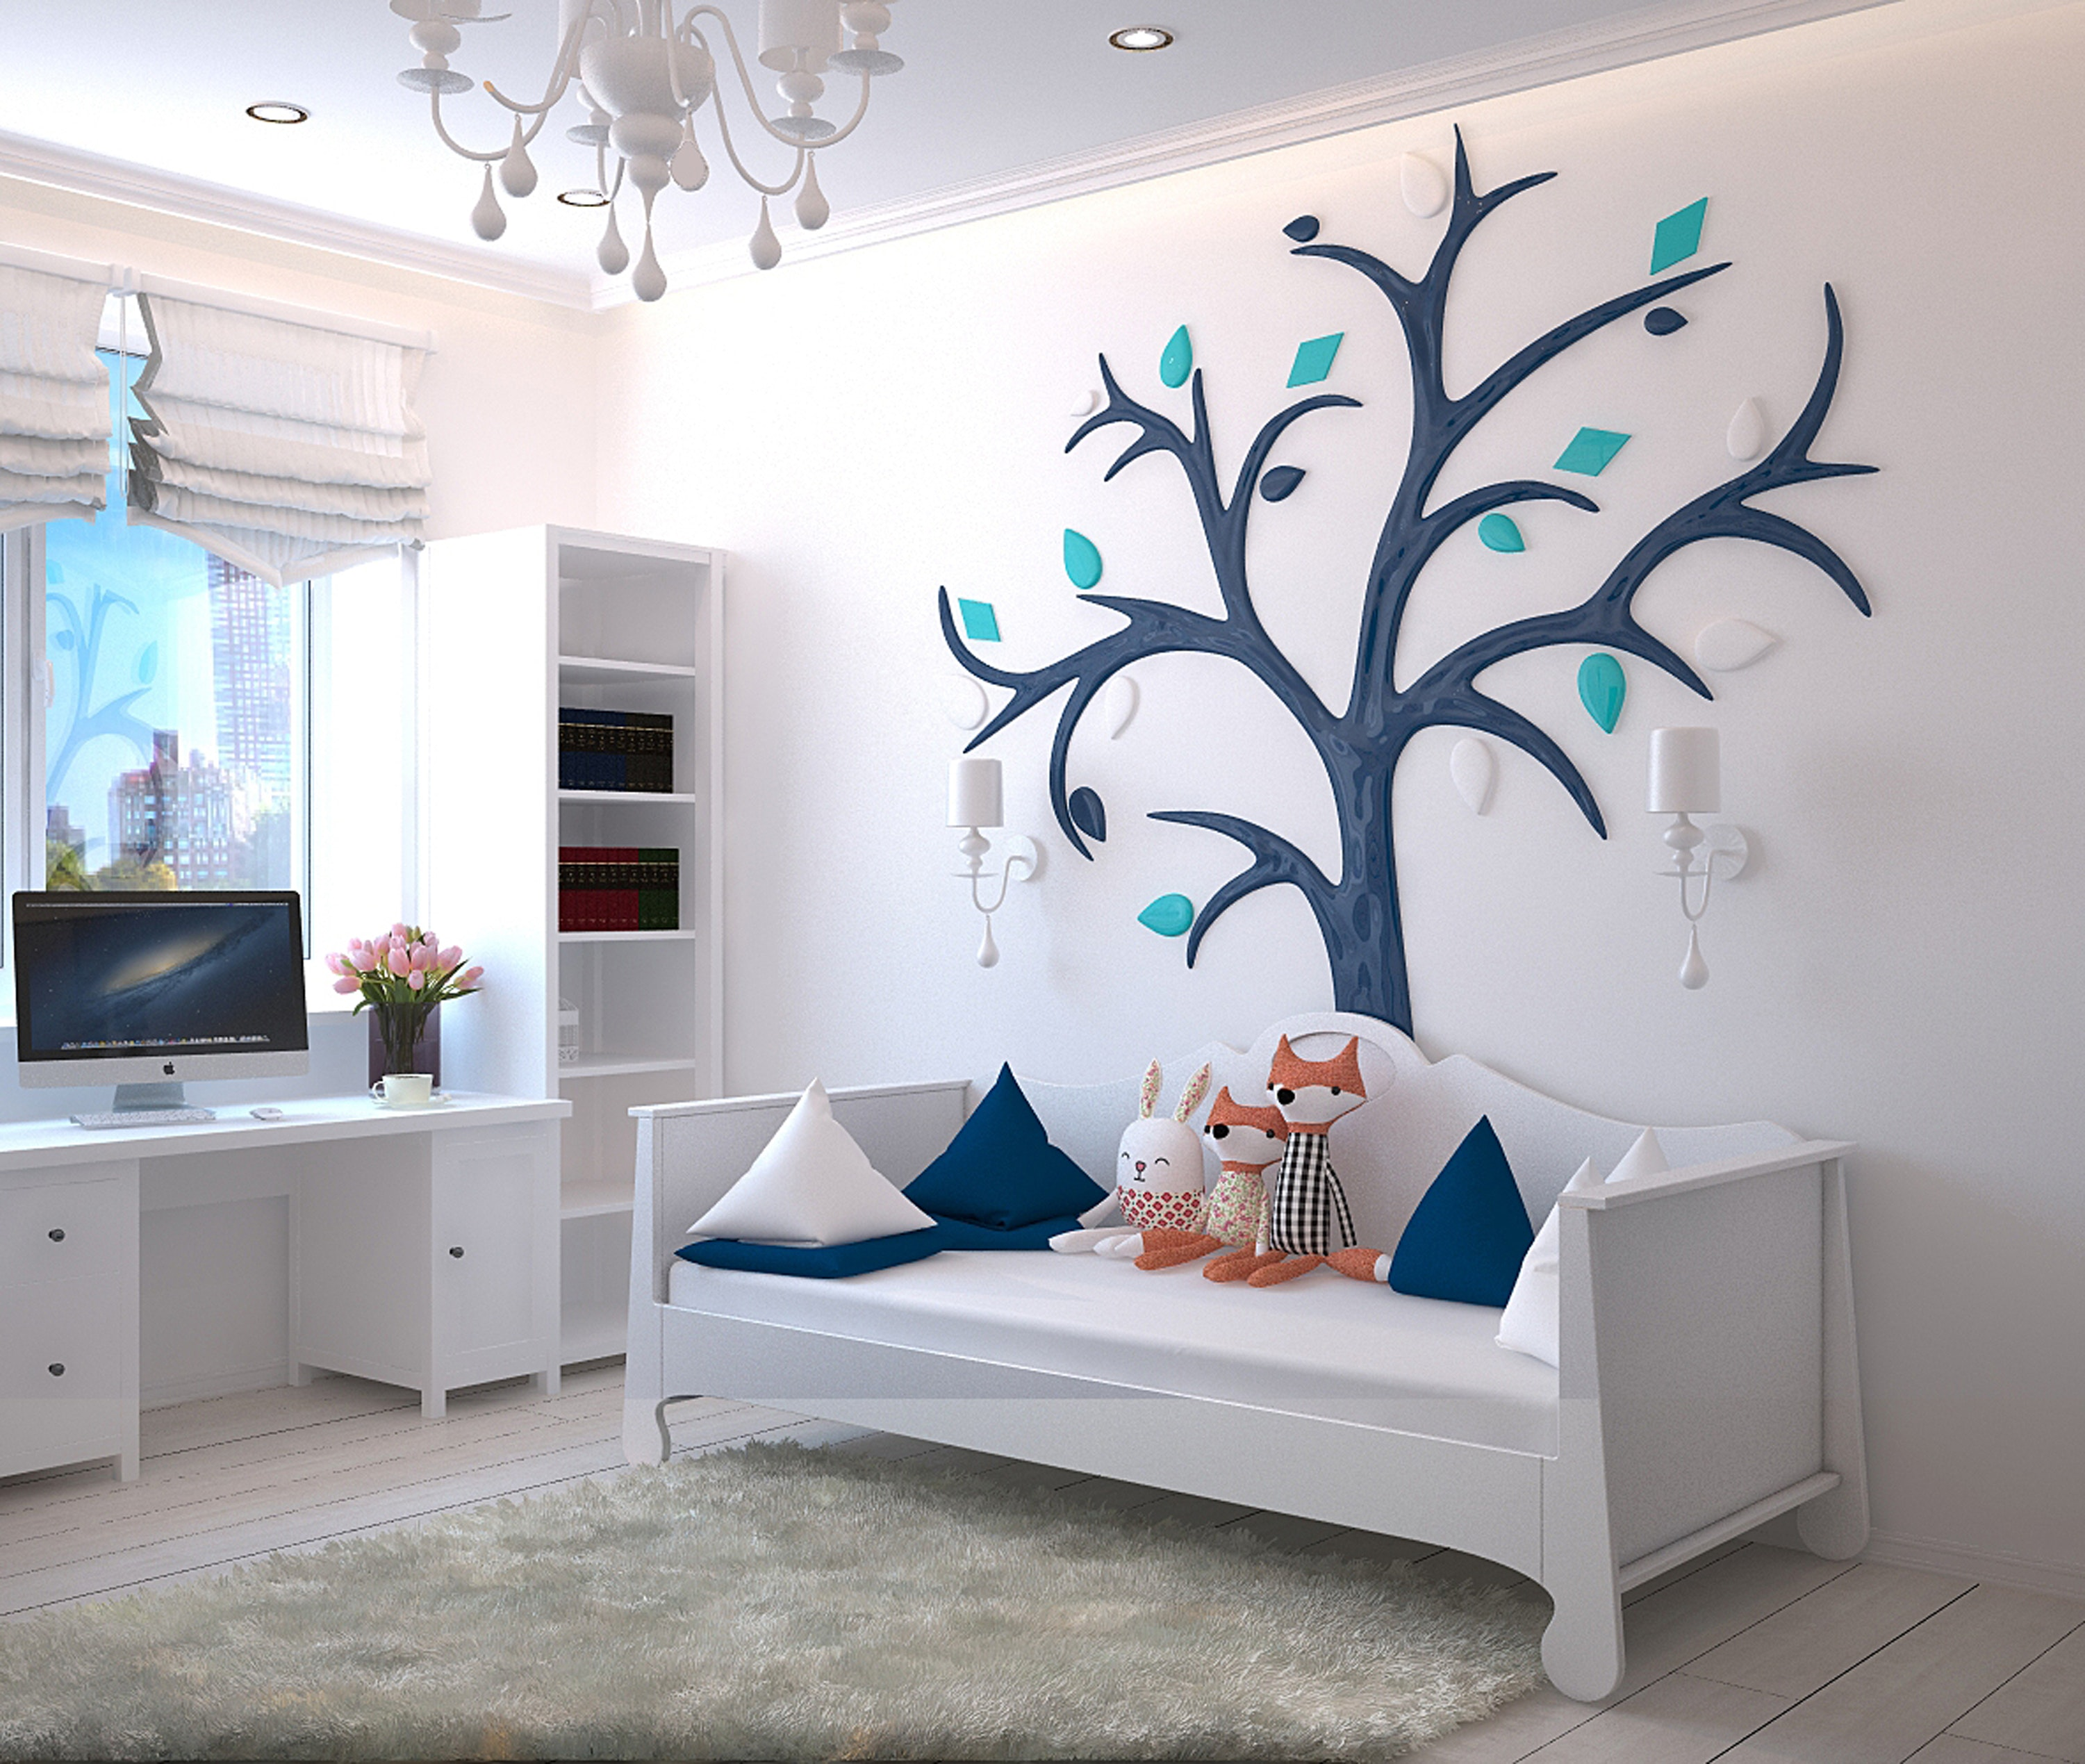 Mural-Inspired Home Decor: Define Your Own Design